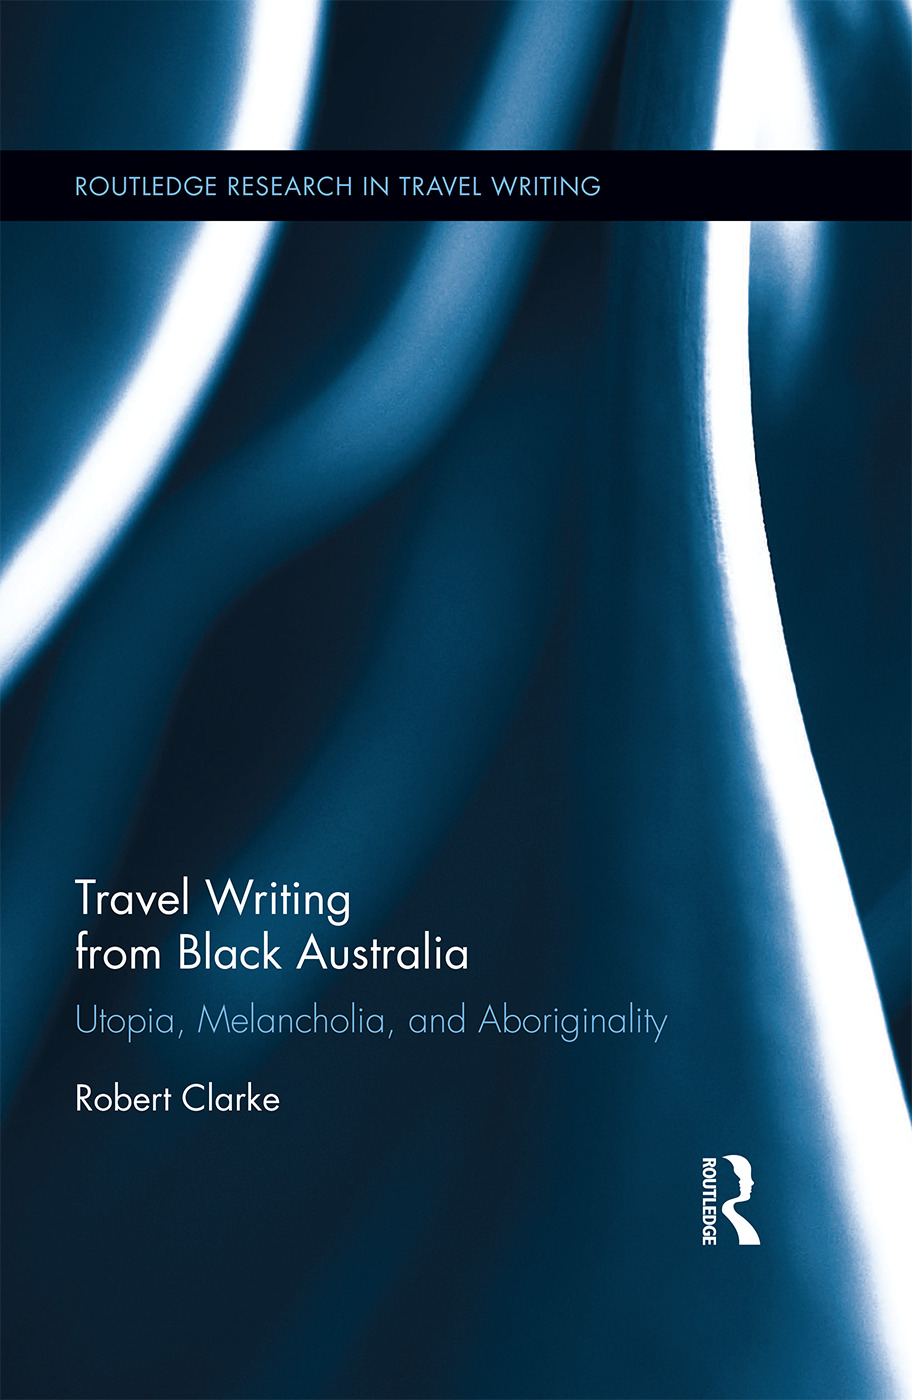 Travel Writing from Black Australia: Utopia, Melancholia, and Aboriginality book cover